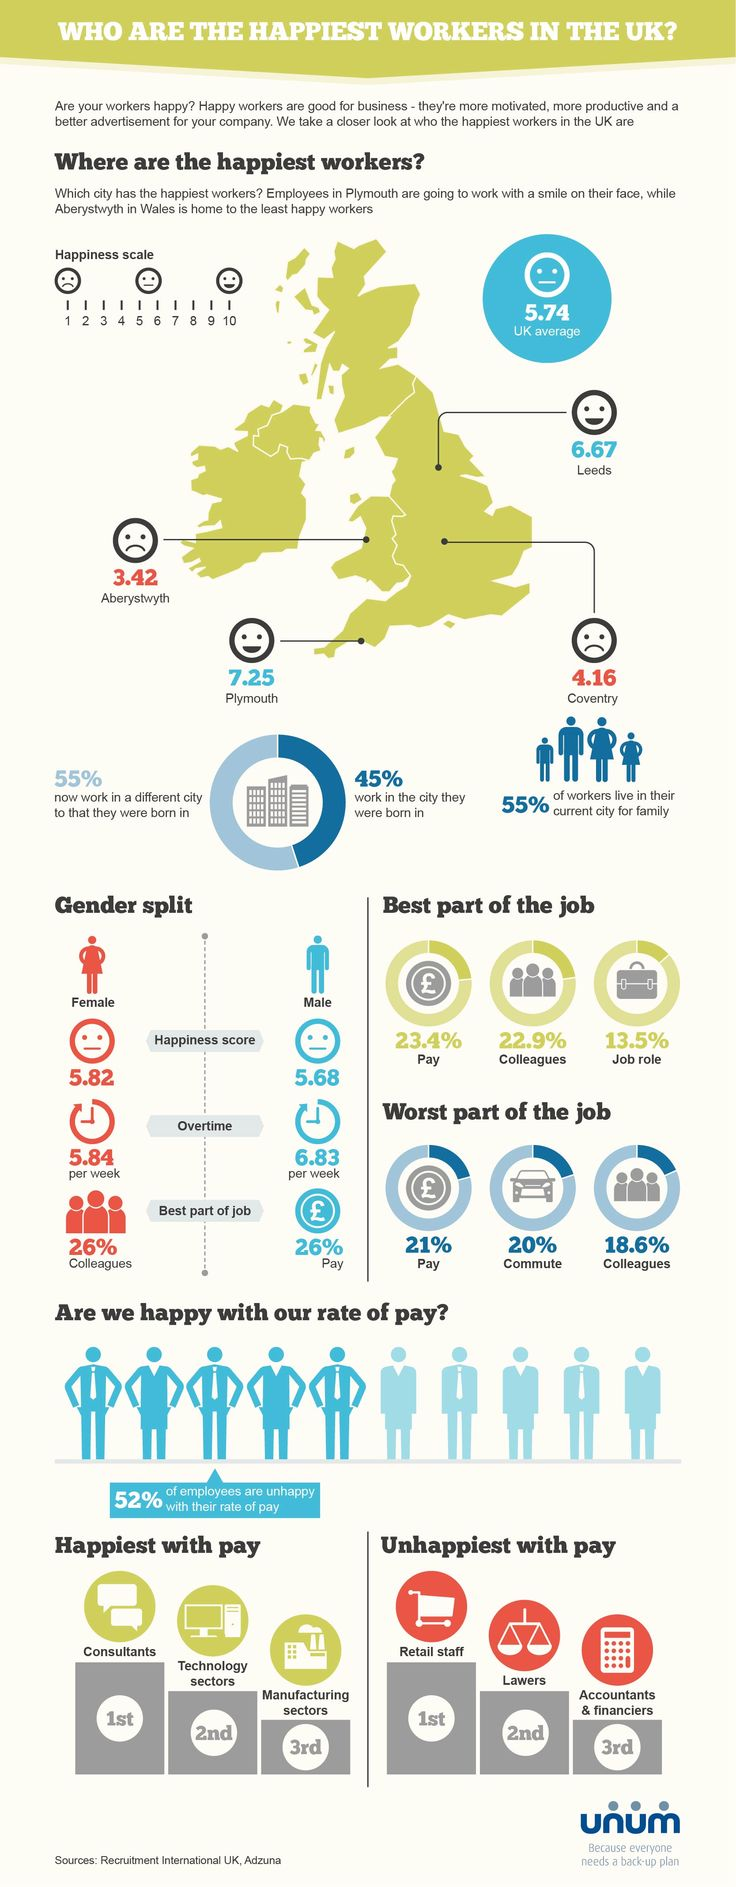 Superior Who Are The Happiest Workers In The UK? #infographic